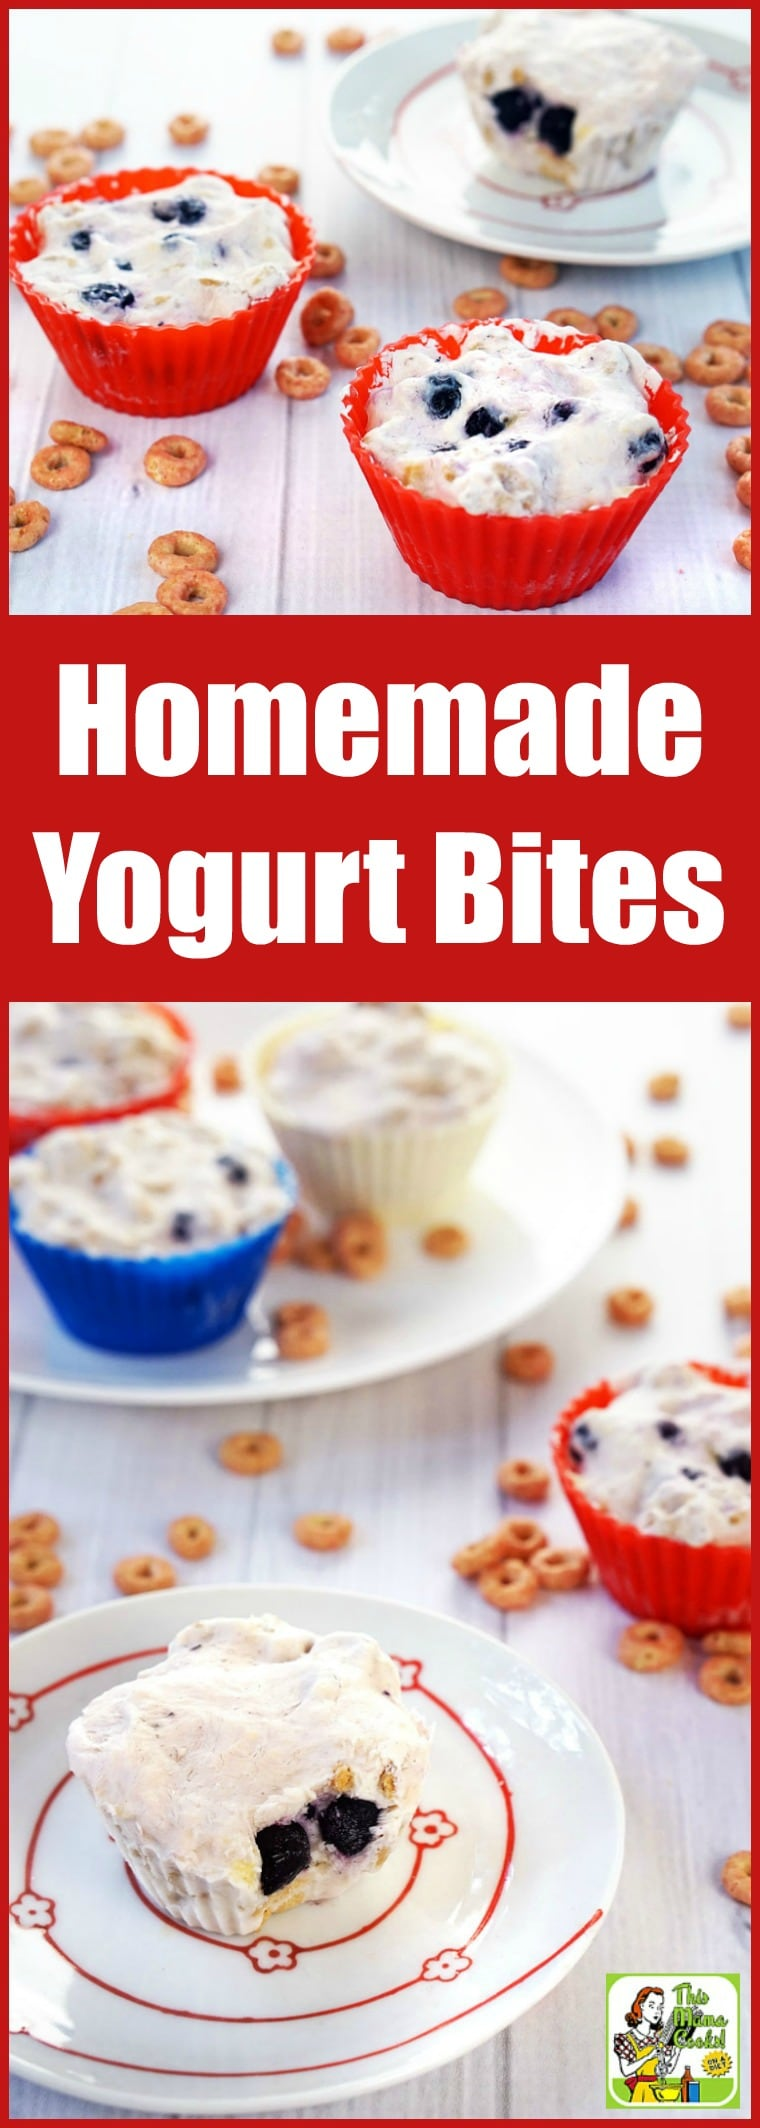 Homemade Yogurt Bites are an easy to make, wholesome breakfast treat or afternoon snack. This yogurt bites recipe contains everything you want in a good-for-you breakfast – fruit and berries, non-fat Greek yogurt, and a whole grain cereal. Gluten-free with a dairy free option. #recipes #easy #recipeoftheday #glutenfree #easyrecipe #easyrecipes #glutenfreerecipes #breakfast #snacks #yogurt #kids #kidfriendly